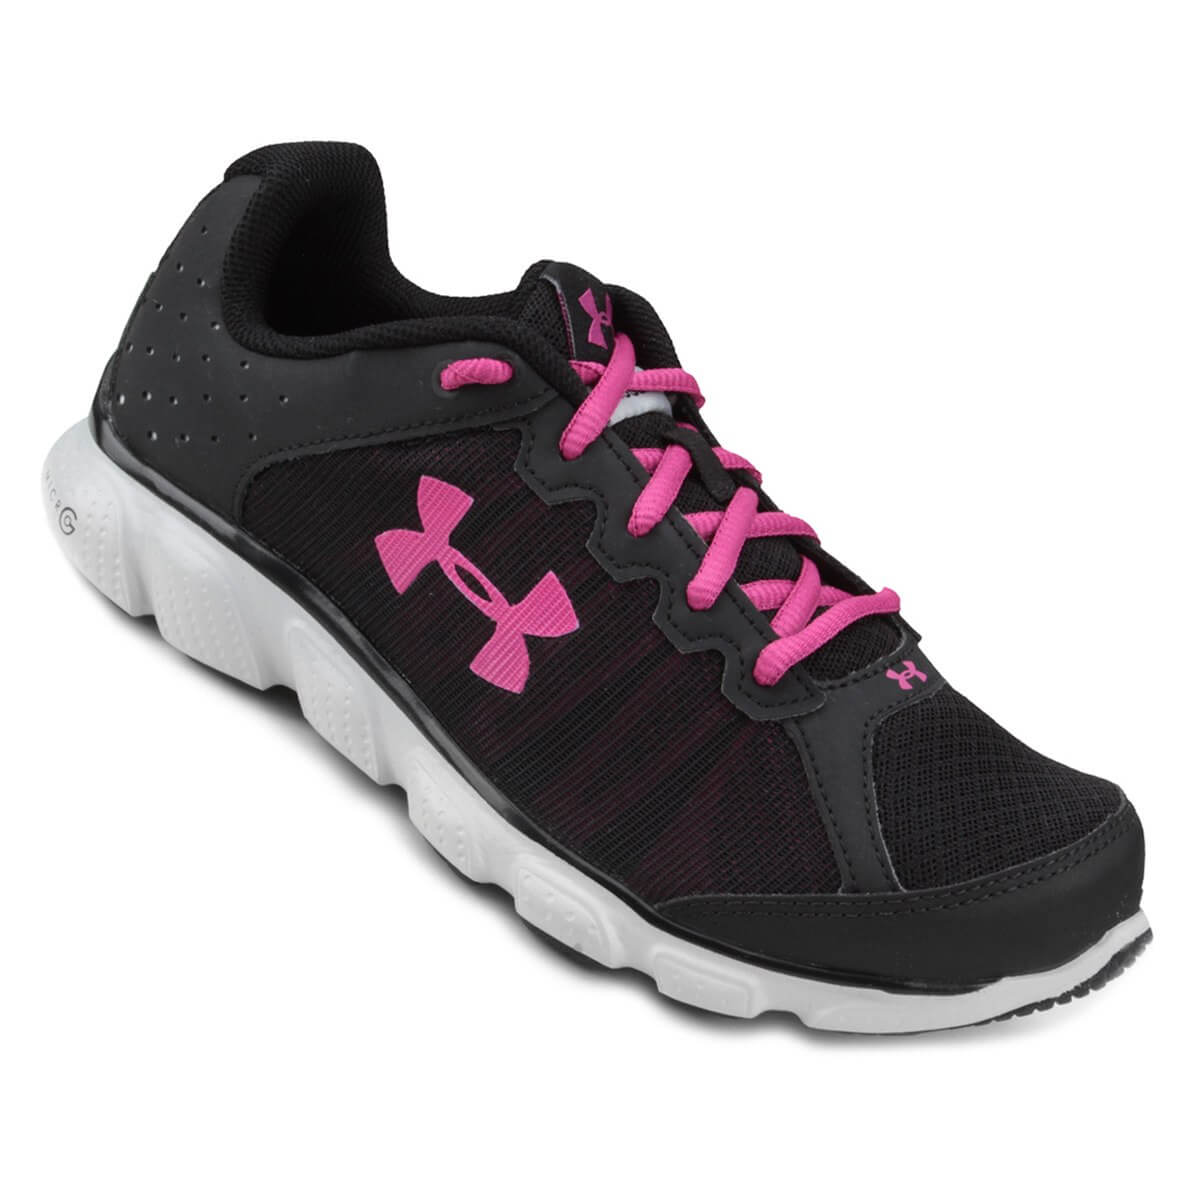 tenis under armour 1 - Tênis Under Armour Micro G Assert 6 SA - R$ 159,99